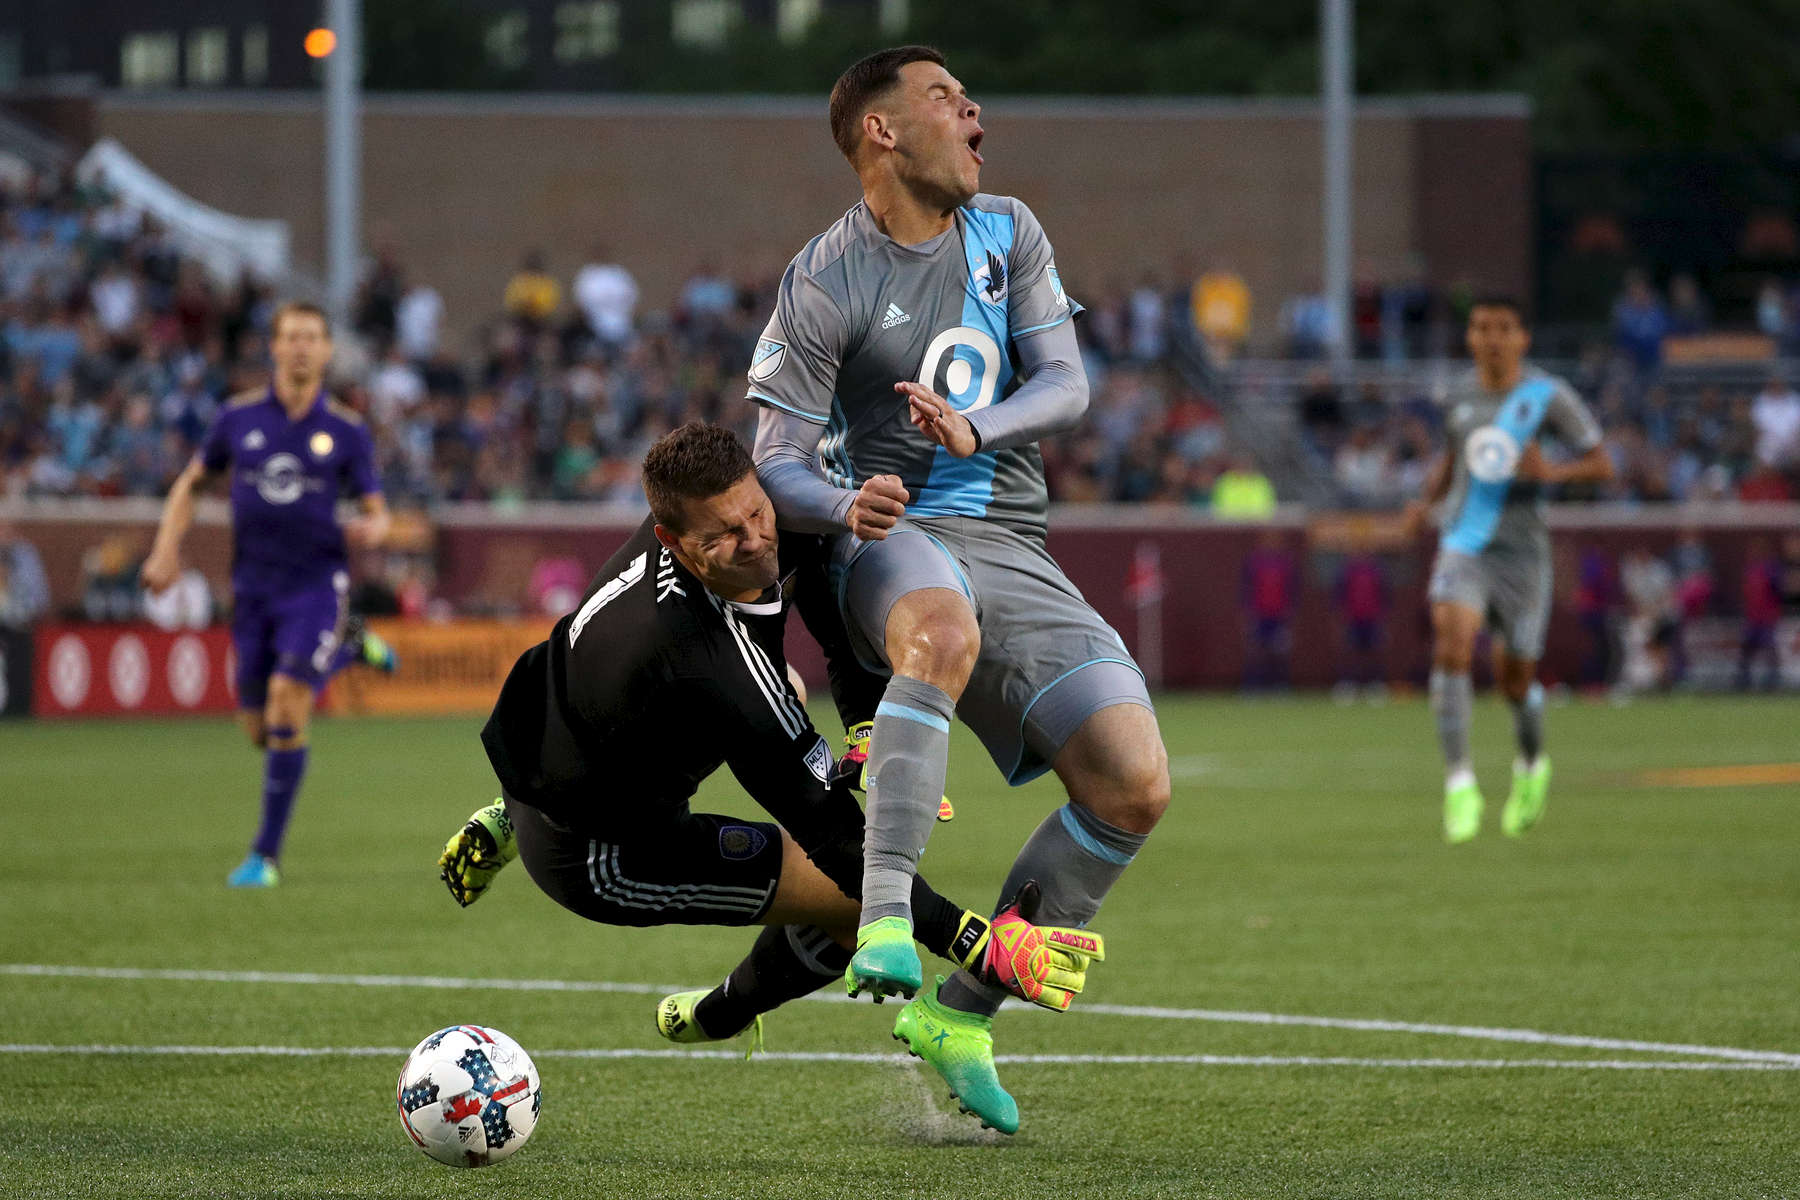 Minnesota United forward Christian Ramirez (21) collides with Orlando City SC goalkeeper Joseph Bendik (1) before taking the ball around him to score during a match at TCF Bank Stadium in Minneapolis.